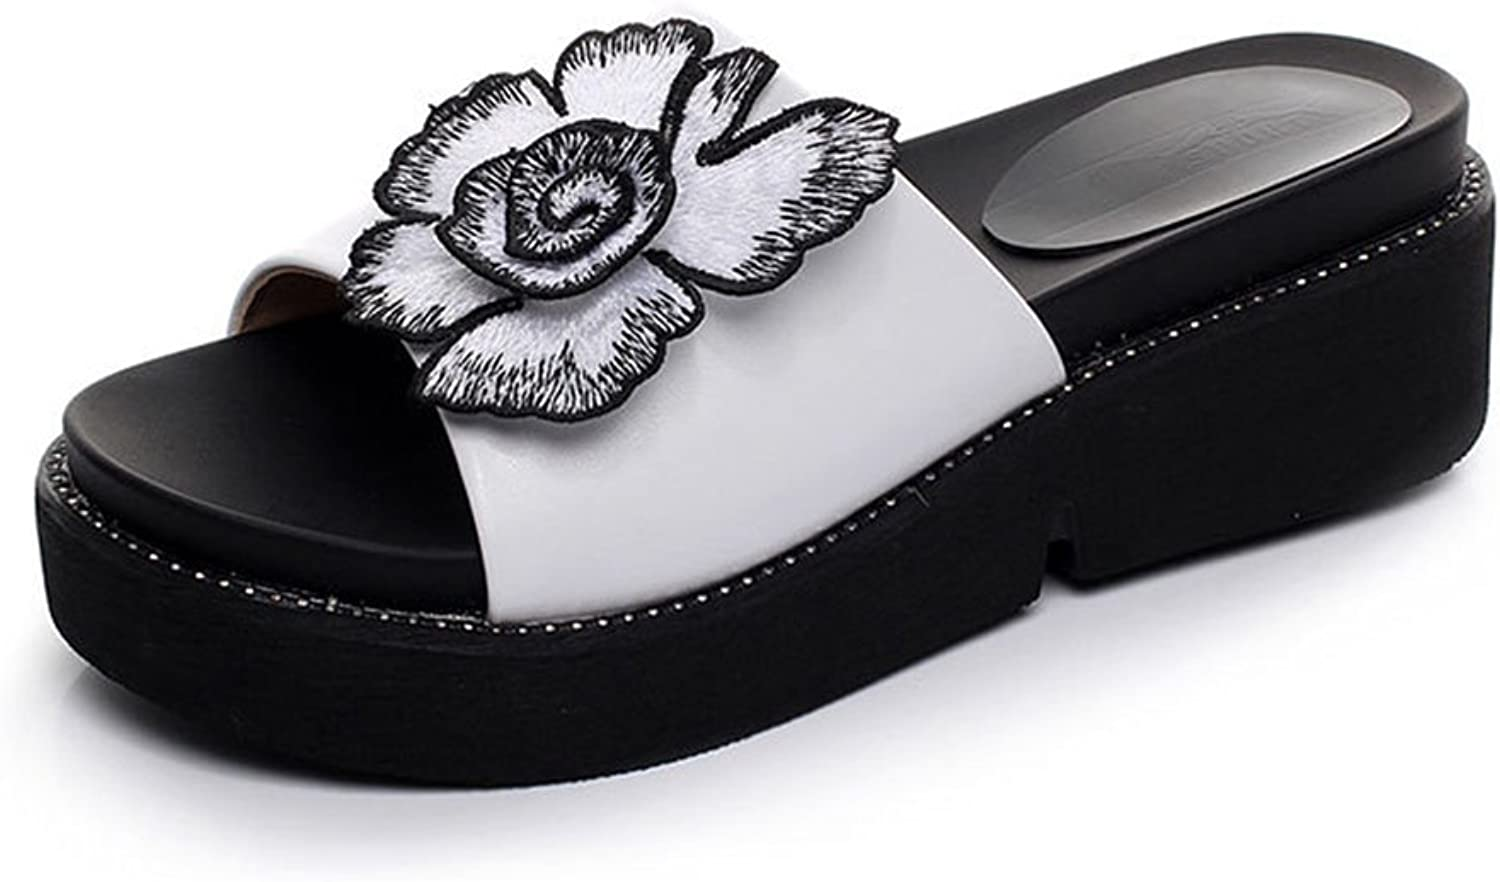 Mobnau Women's Leather Flowers Casual Sandles Slide Sandals